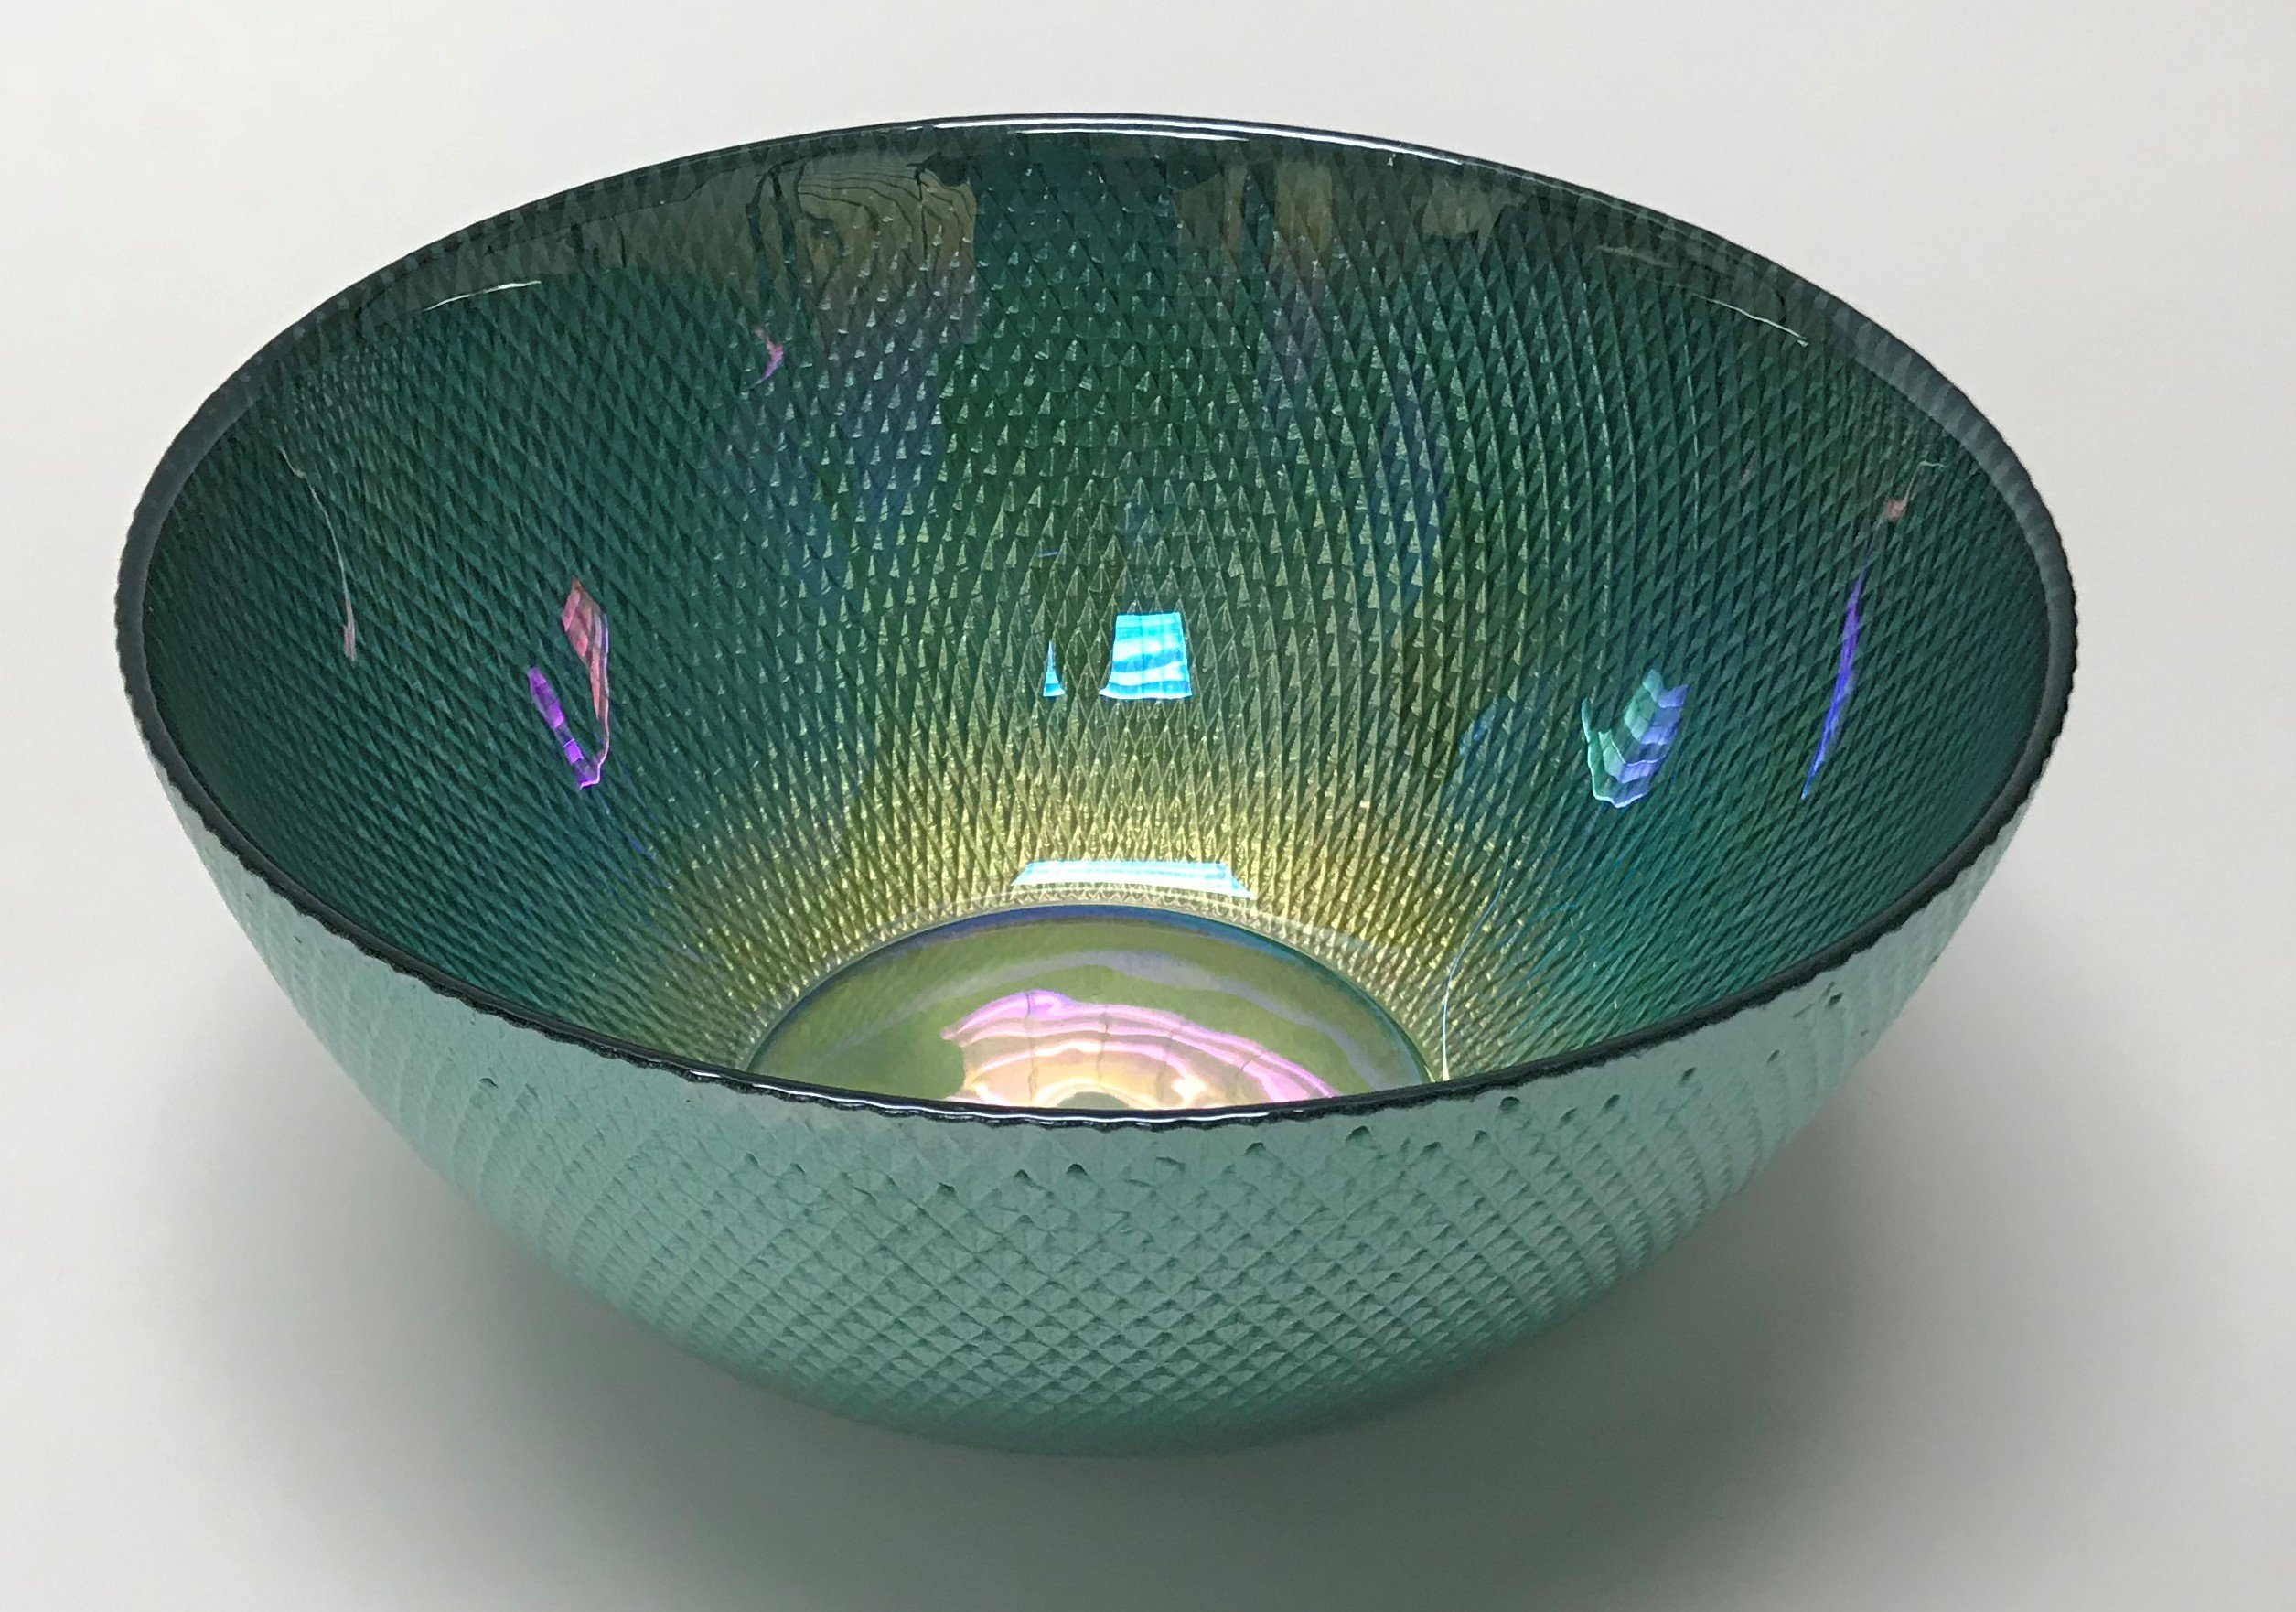 Circleware 03121 Radiance Glass Serving Mixing Fruit Bowl, Glassware for for Salad, Punch, Beverage, Ice Cream, Dessert, Food and Best Selling Home & Kitchen Decor Gifts, 10'', Teal Luster by Circleware (Image #1)